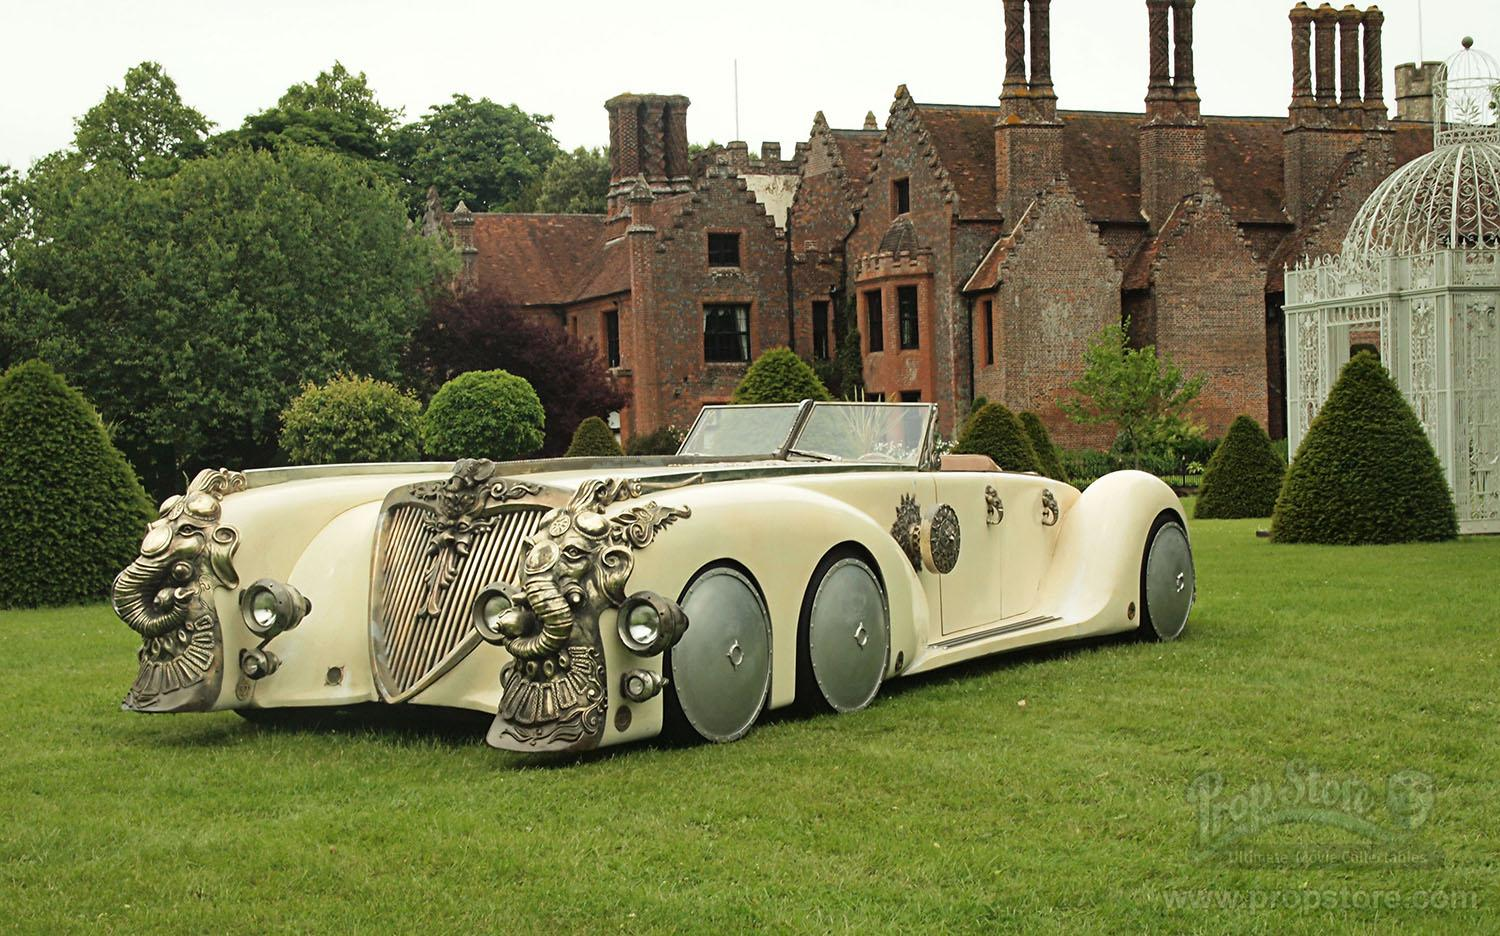 Car Auctions Ny >> The Nautilus Car – Prop Store - Ultimate Movie Collectables